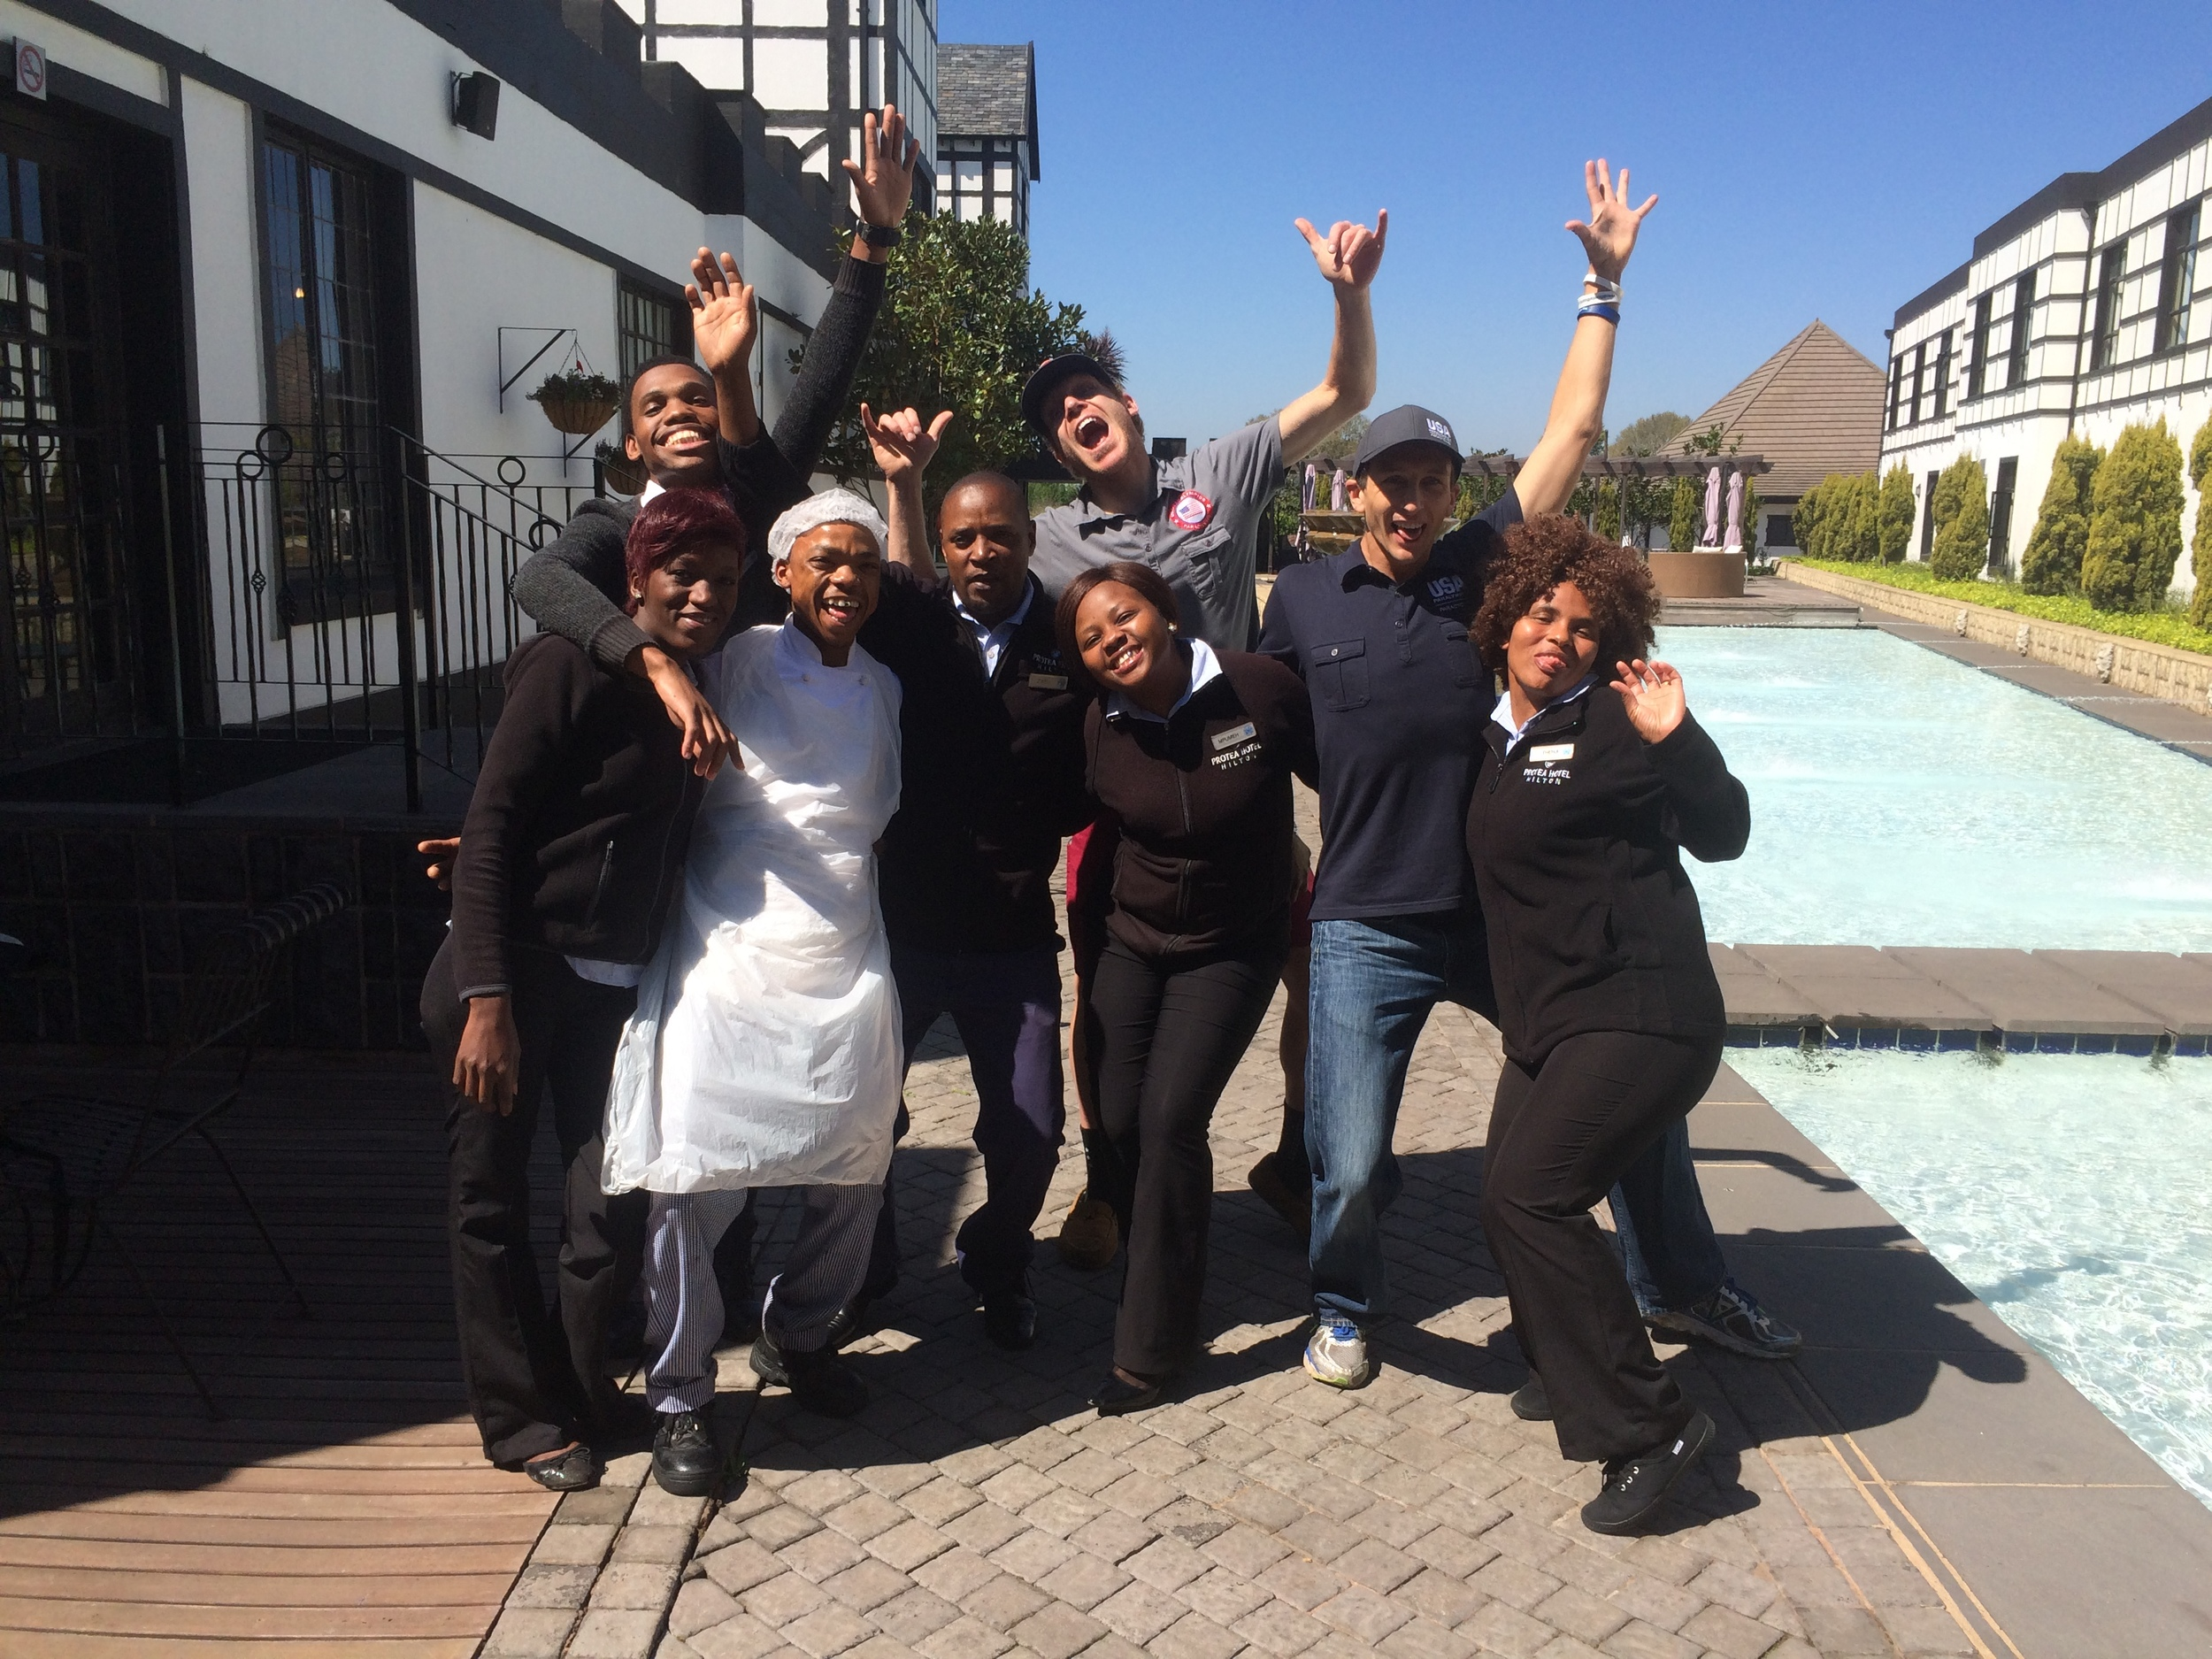 Saying goodbye to the friendly staff at our hotel in South Africa. They were AWESOME!